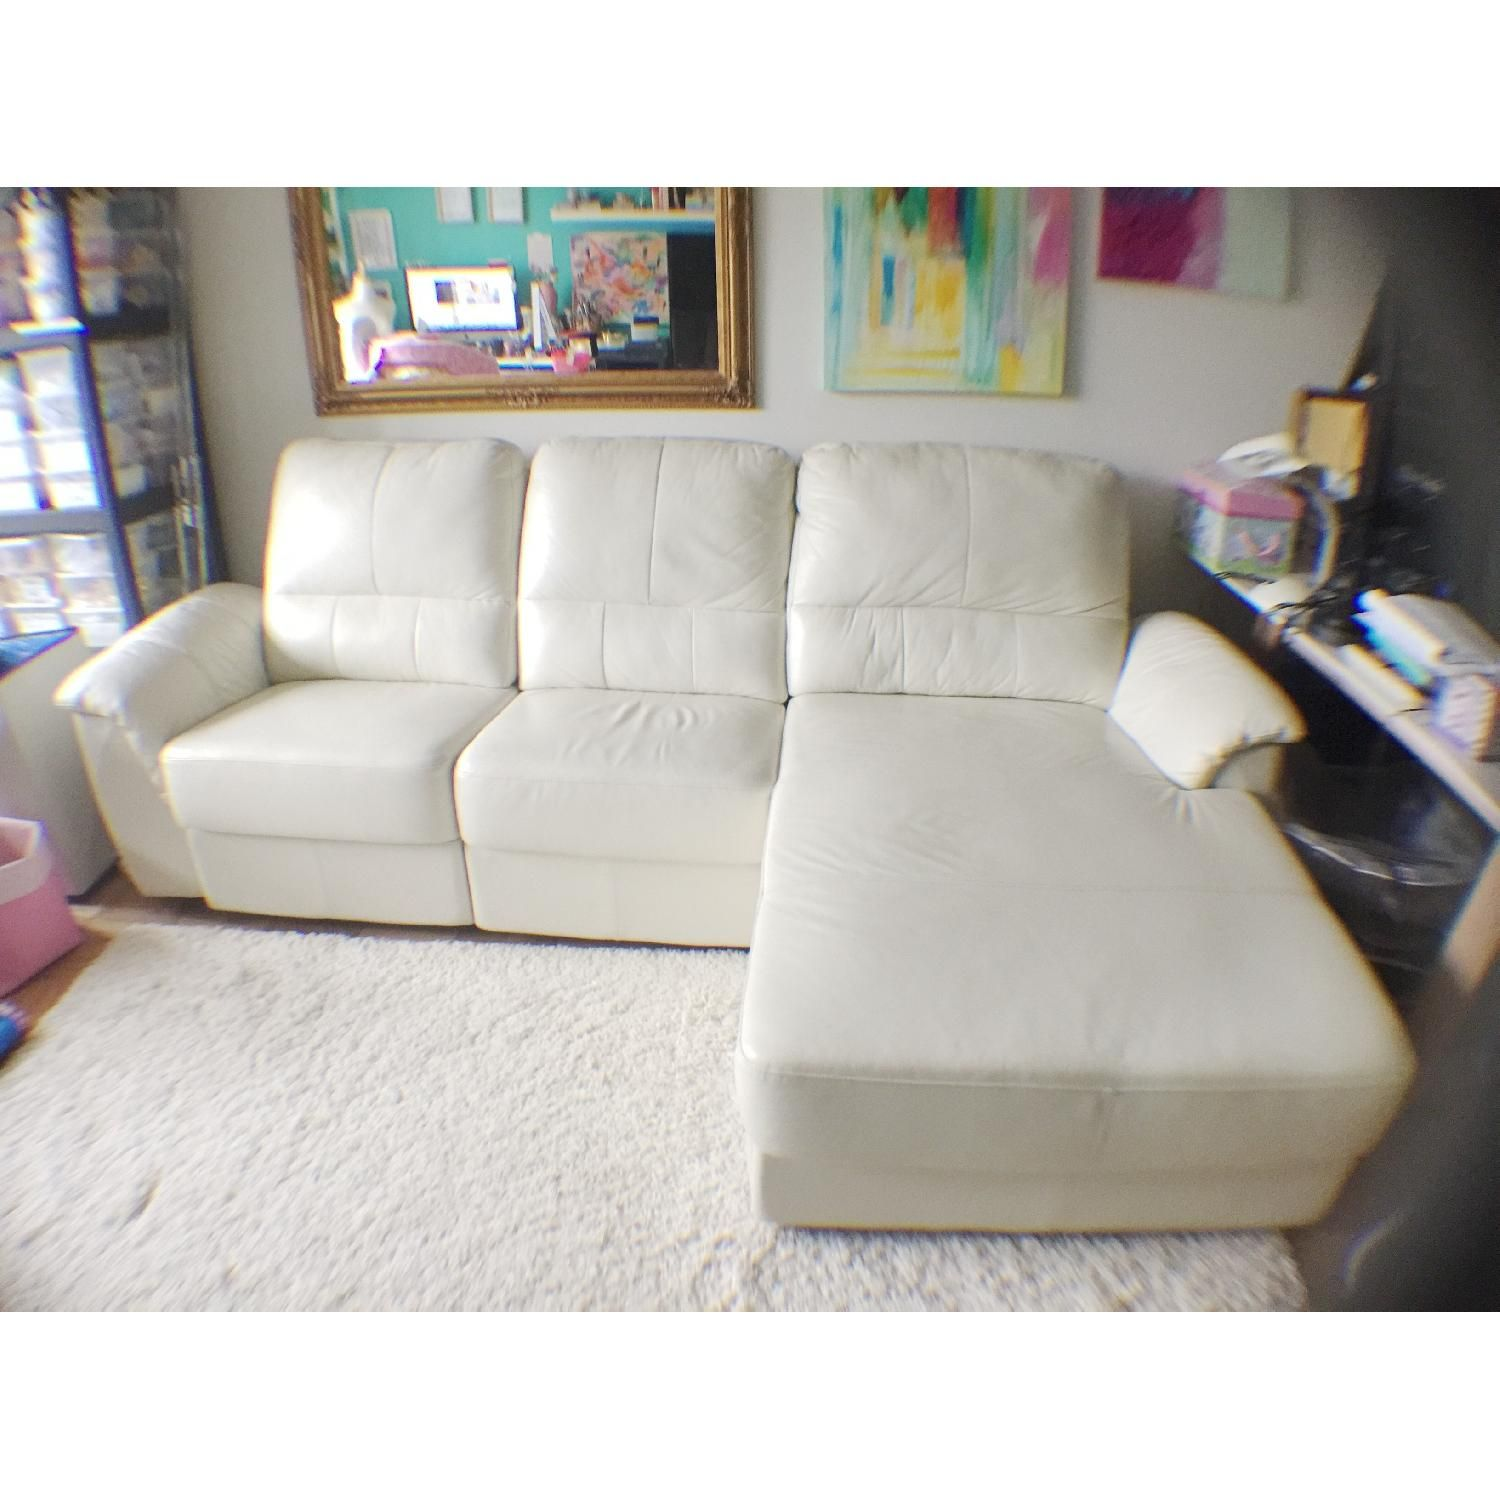 Cellini Ivory White Leather Sectional Sleeper Sofa Sectional